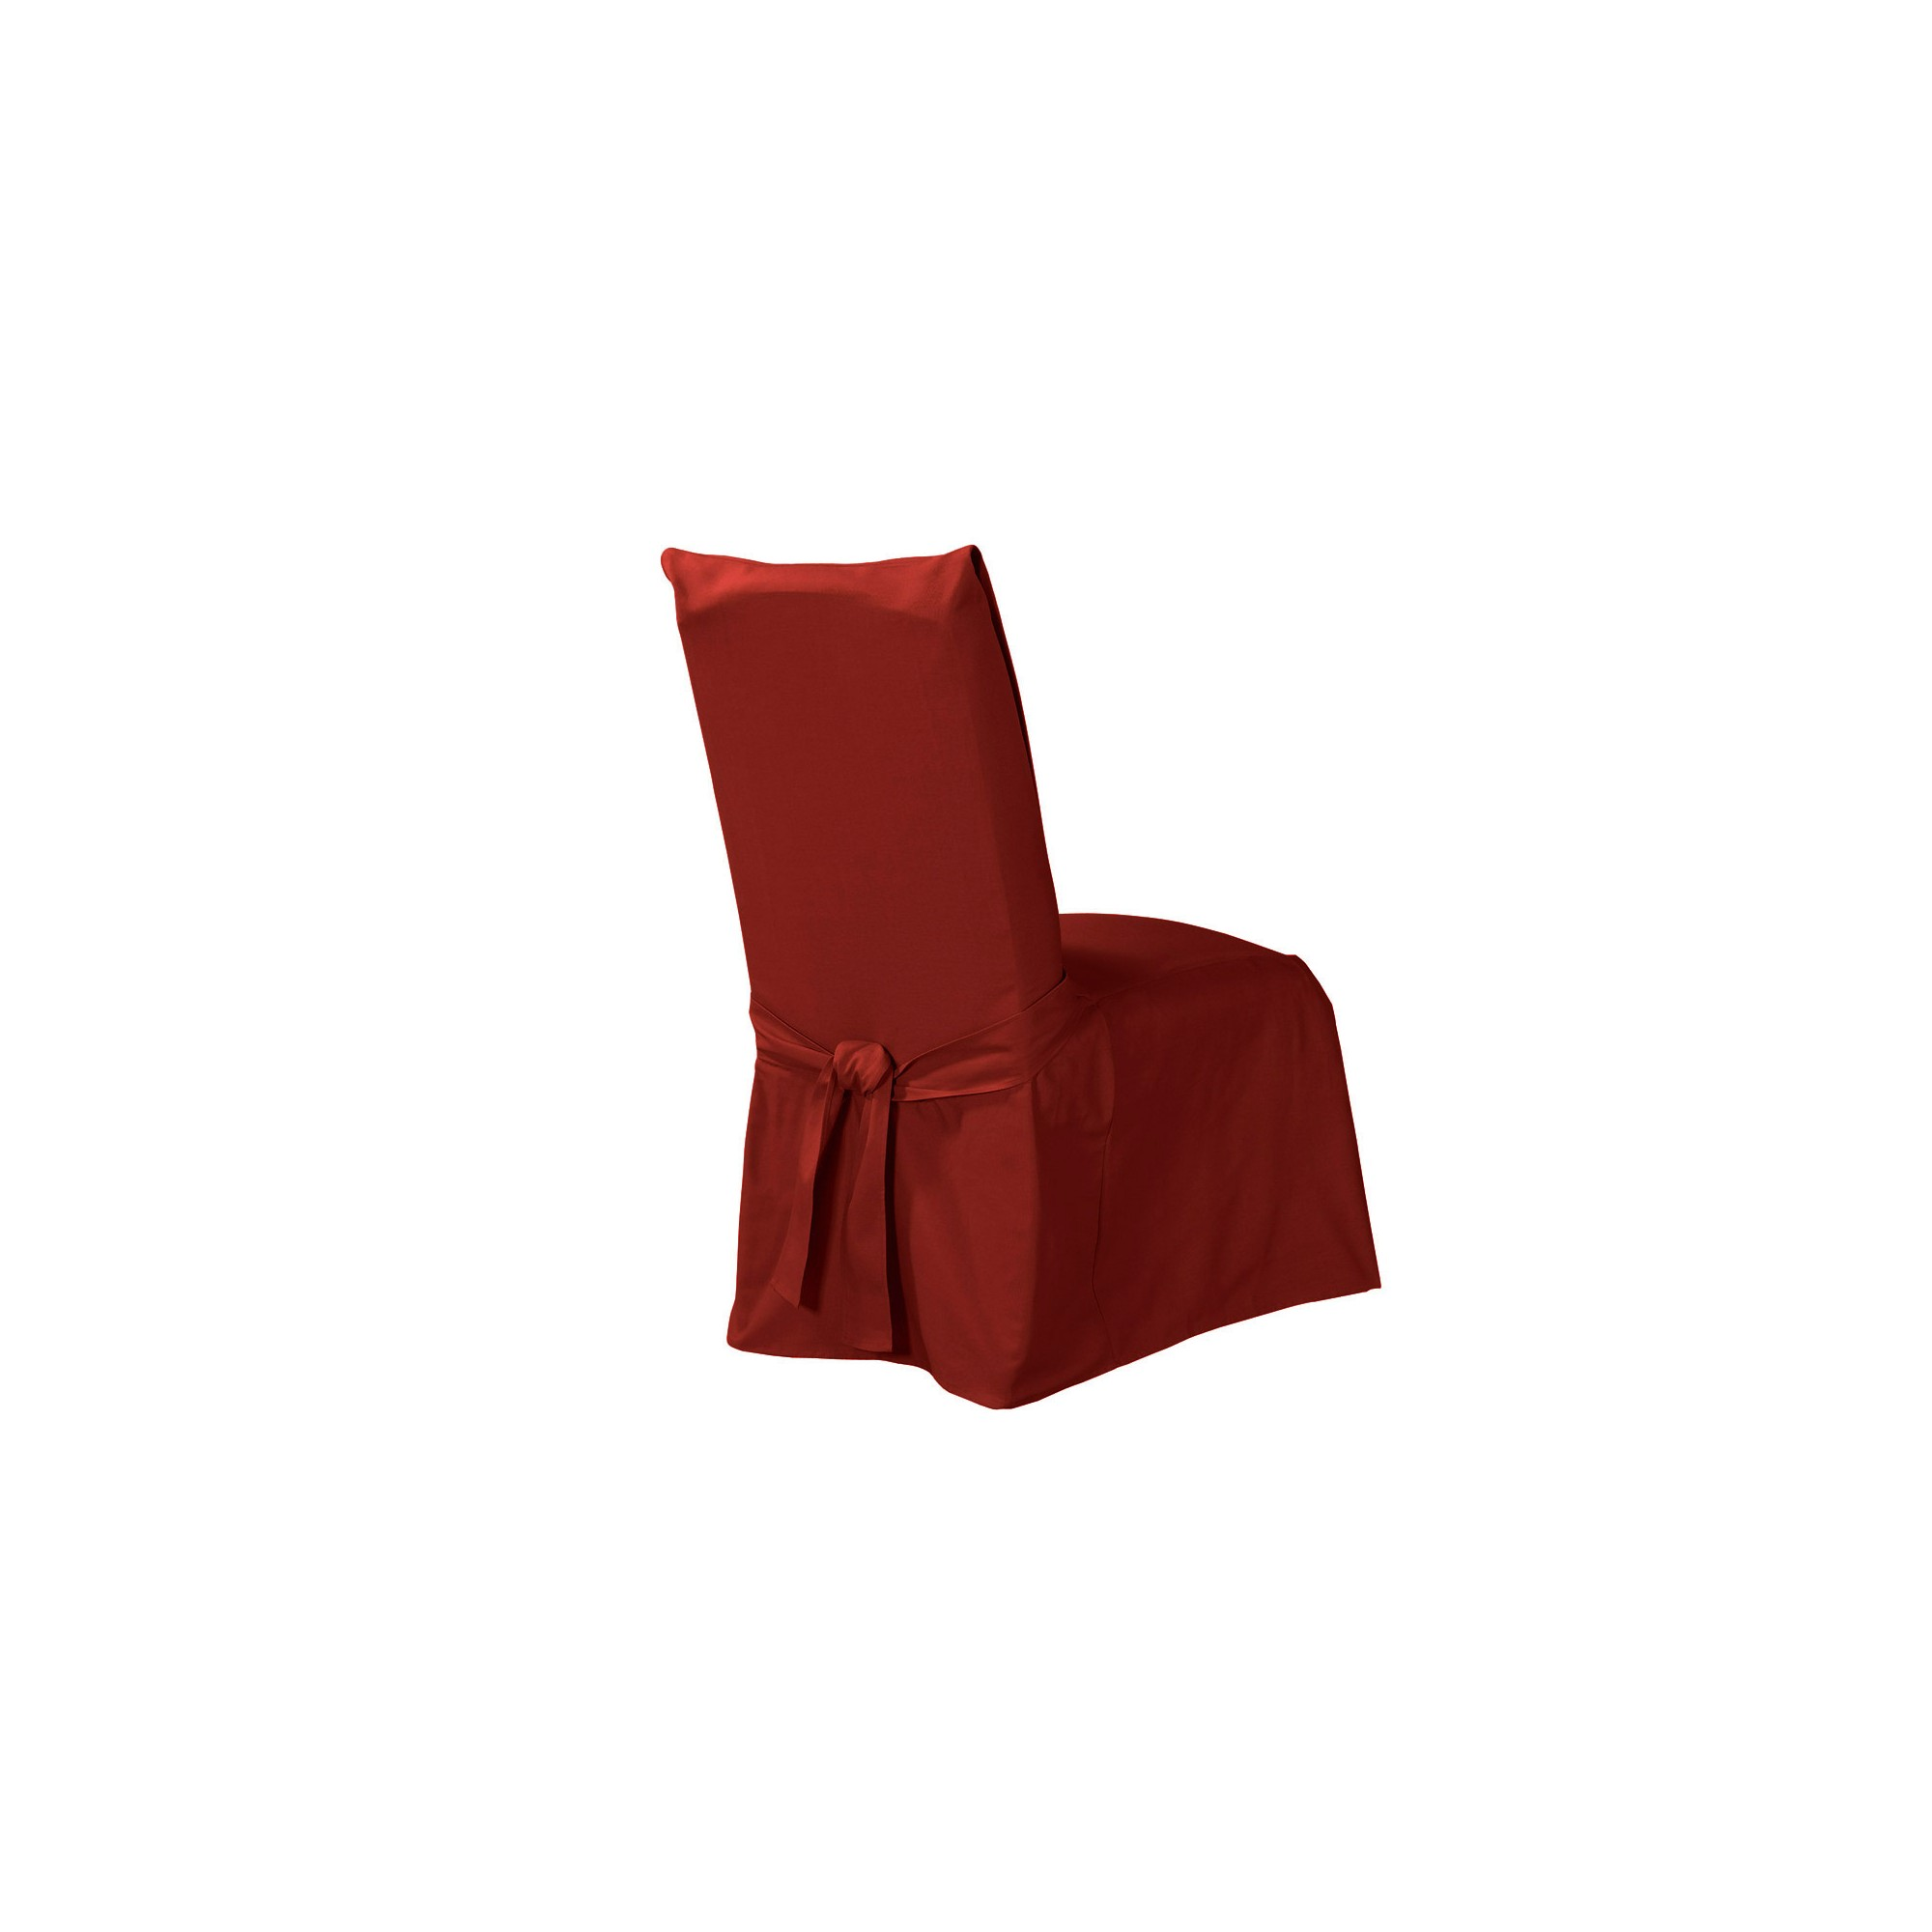 Cotton Duck Long Dining Room Chair Slipcover Claret - Sure Fit